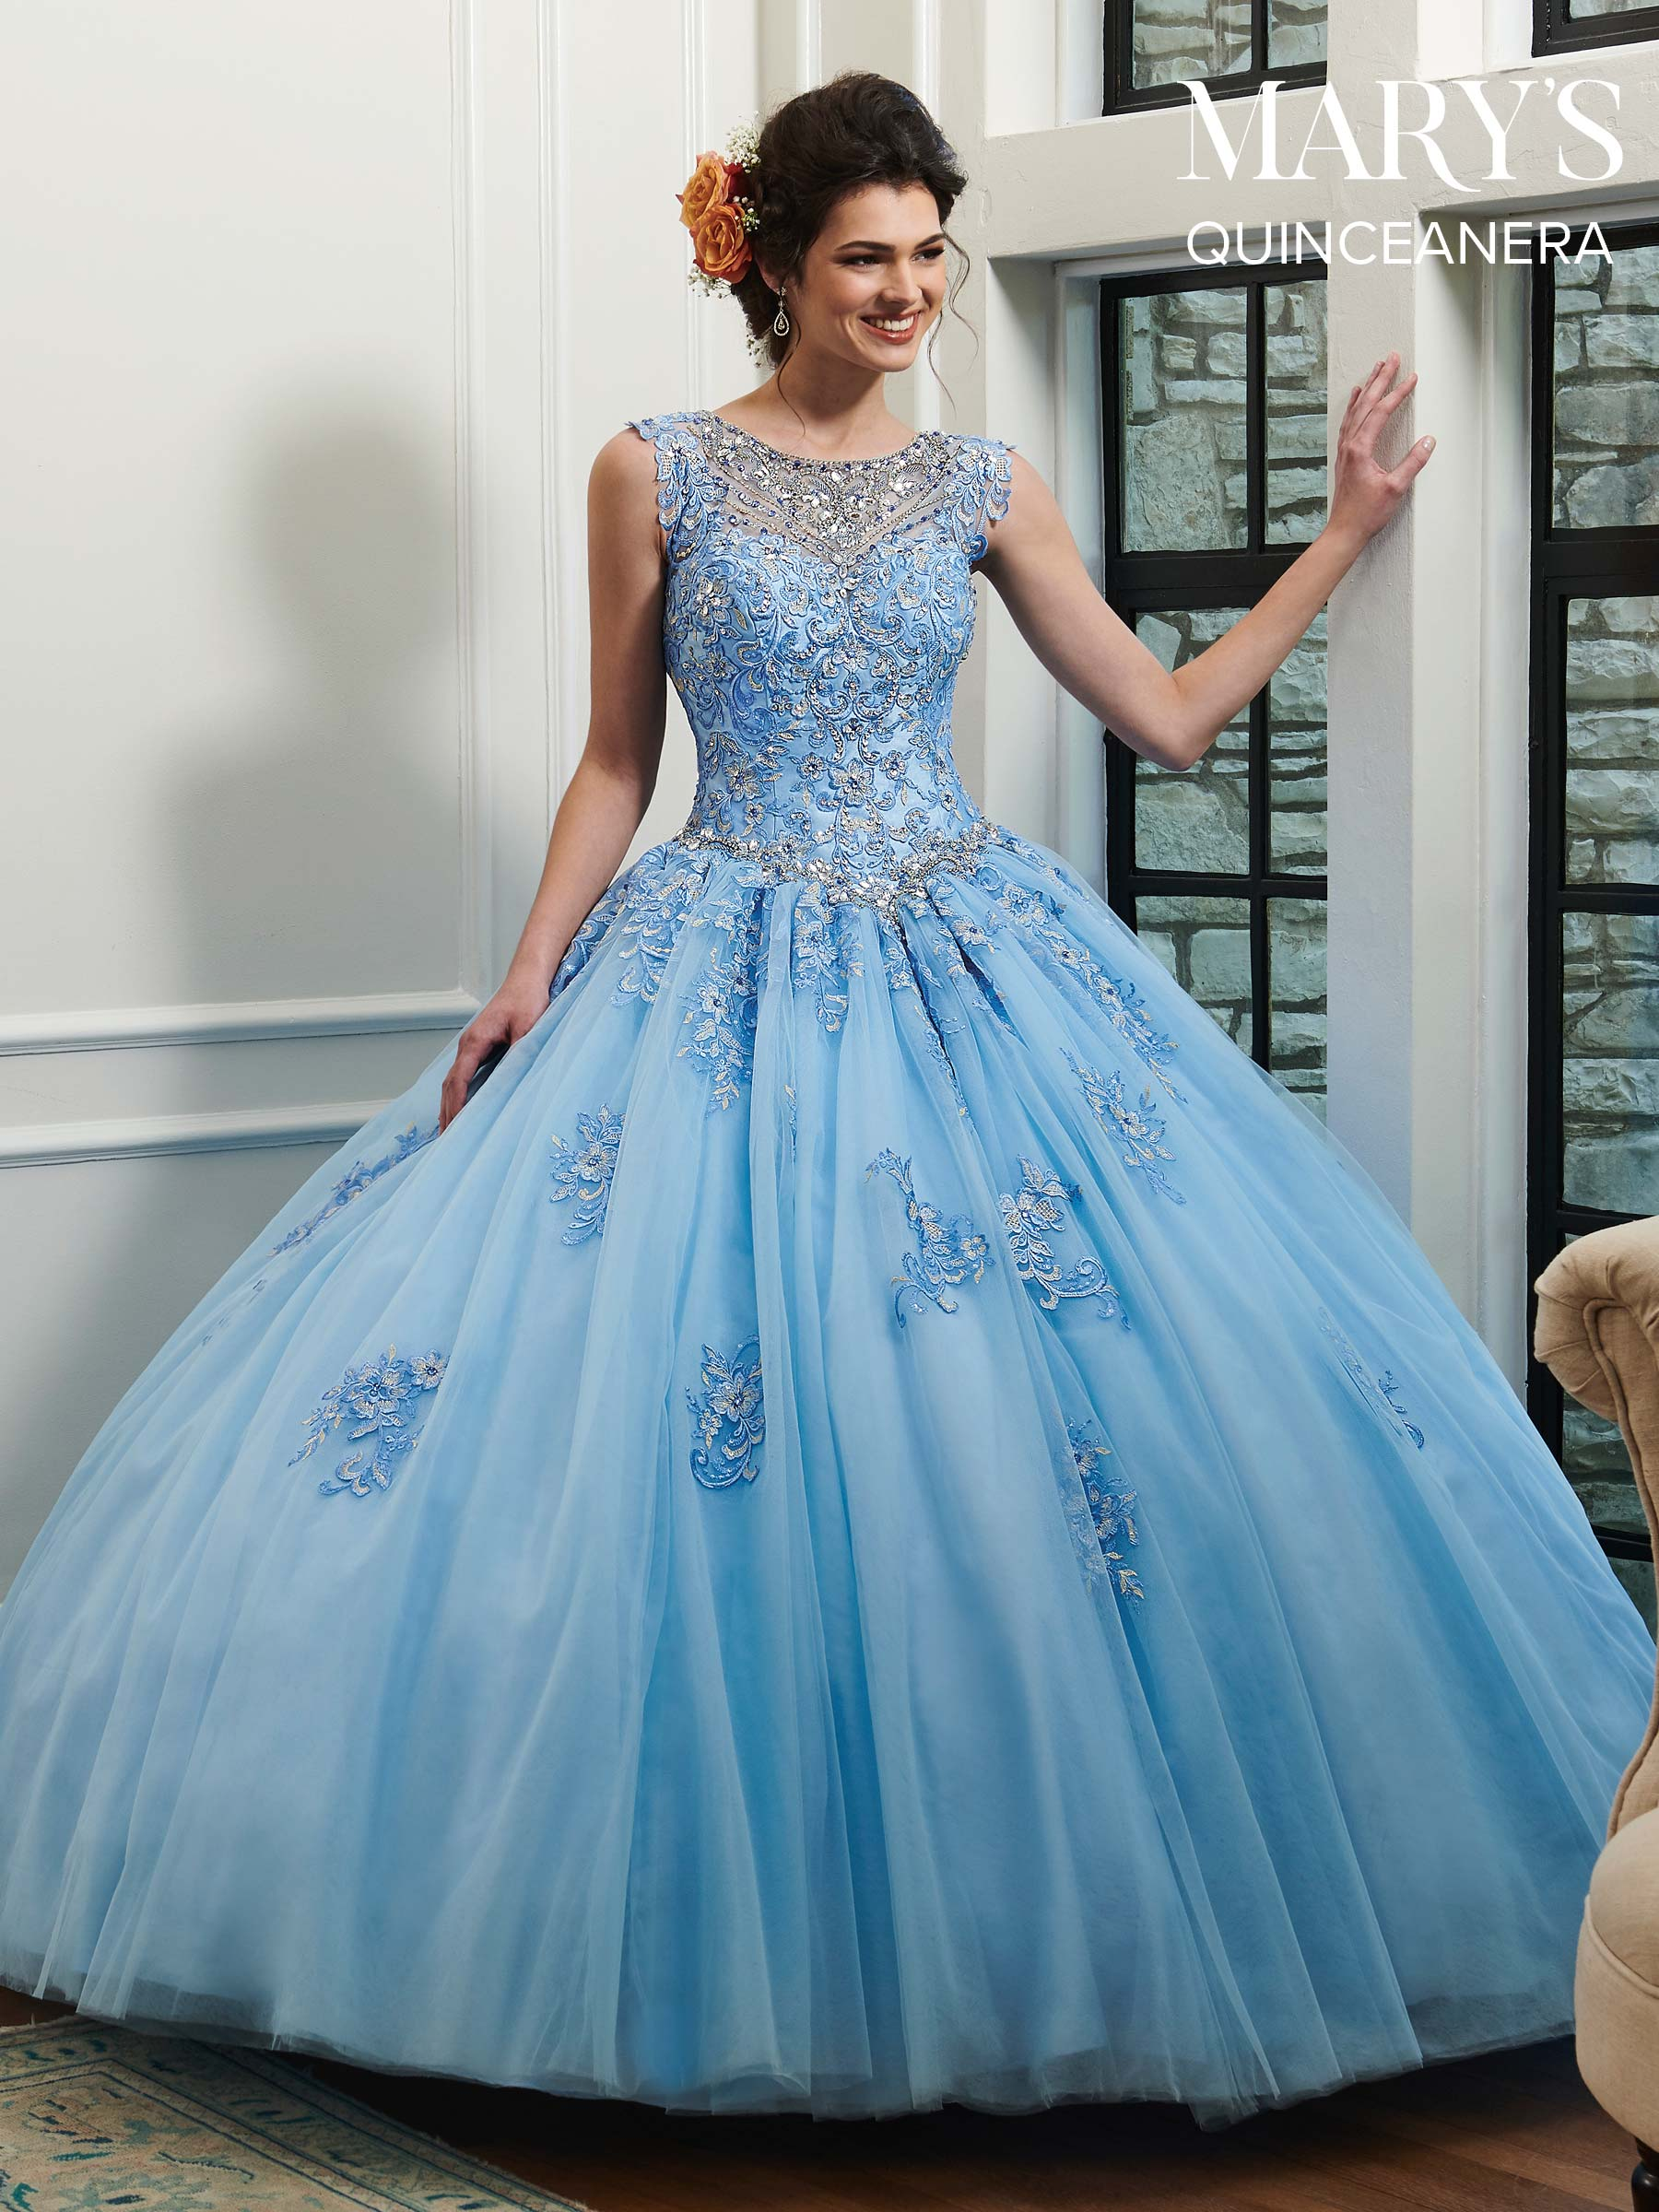 Perfect Pictures Of Baby Blue Sweet 16 Dresses - Cutest Baby ...